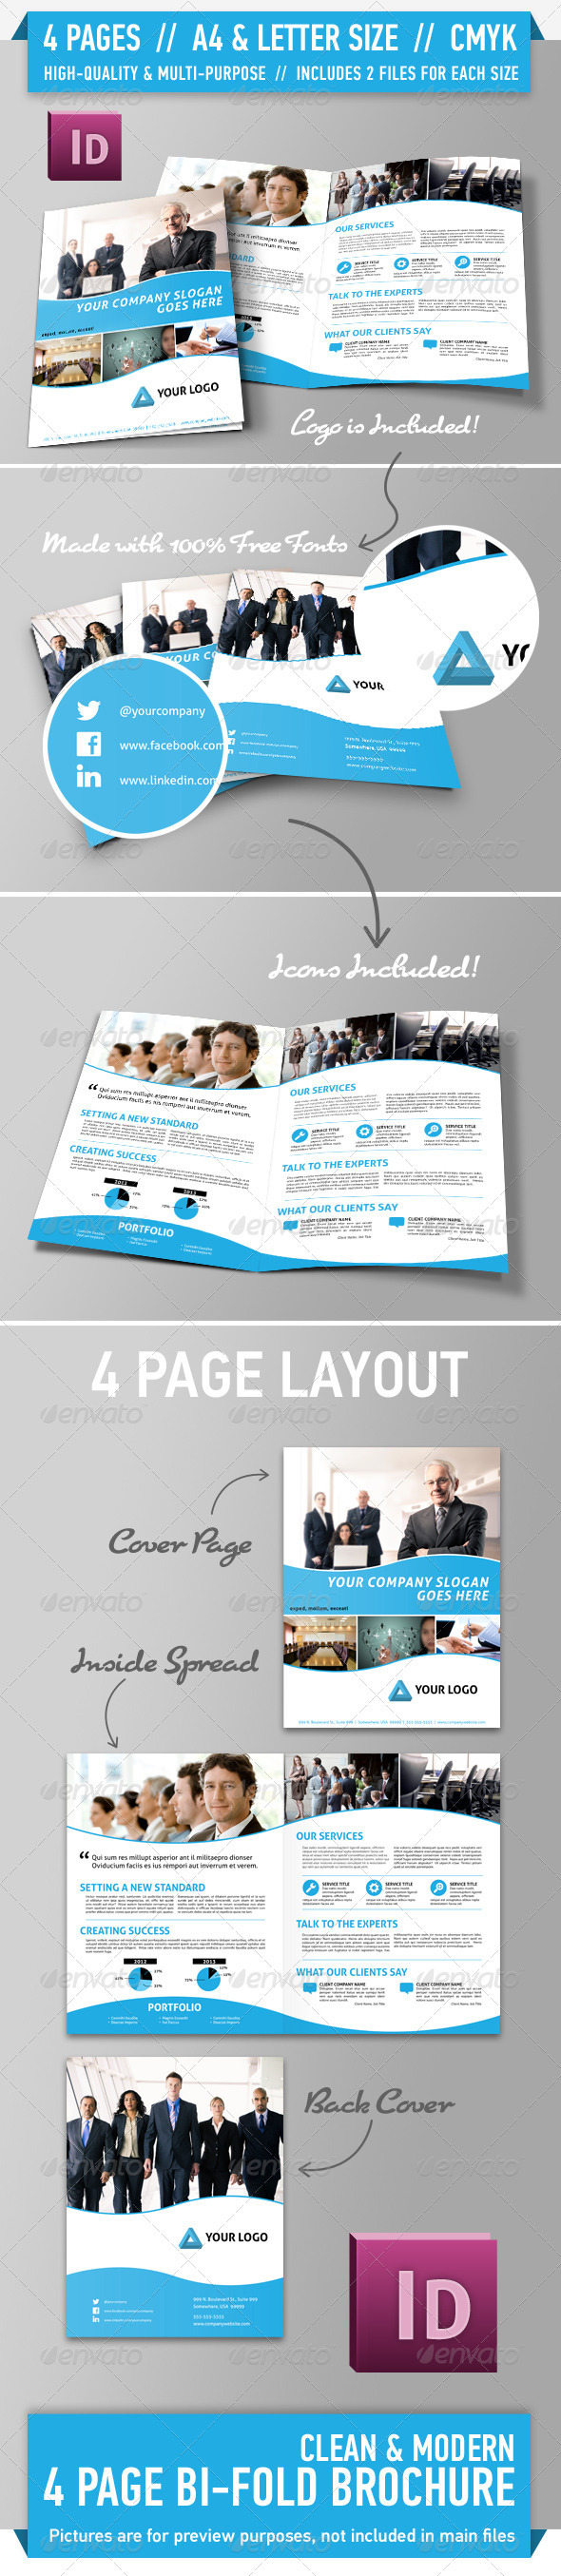 Clean Modern Bifold Brochure - Vol. 1 - Corporate Brochures